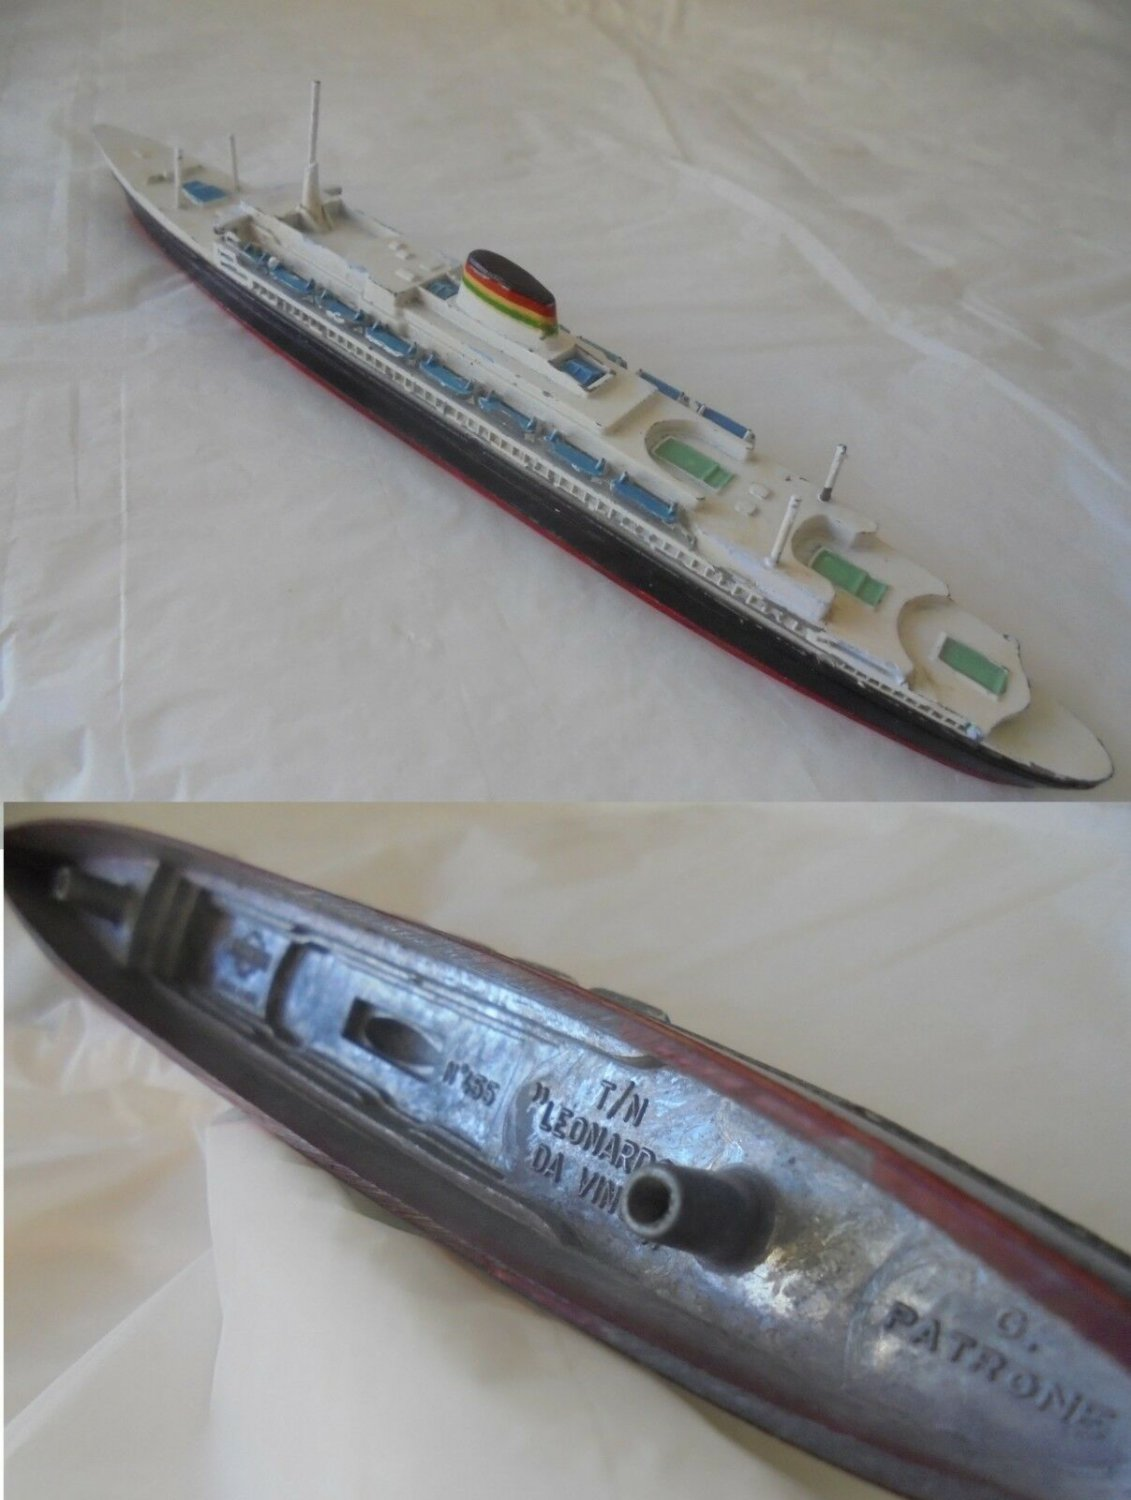 Model of the cruise ship TURBONAVE LEONARDO Da VINCI Mercury 455 Original from 1960